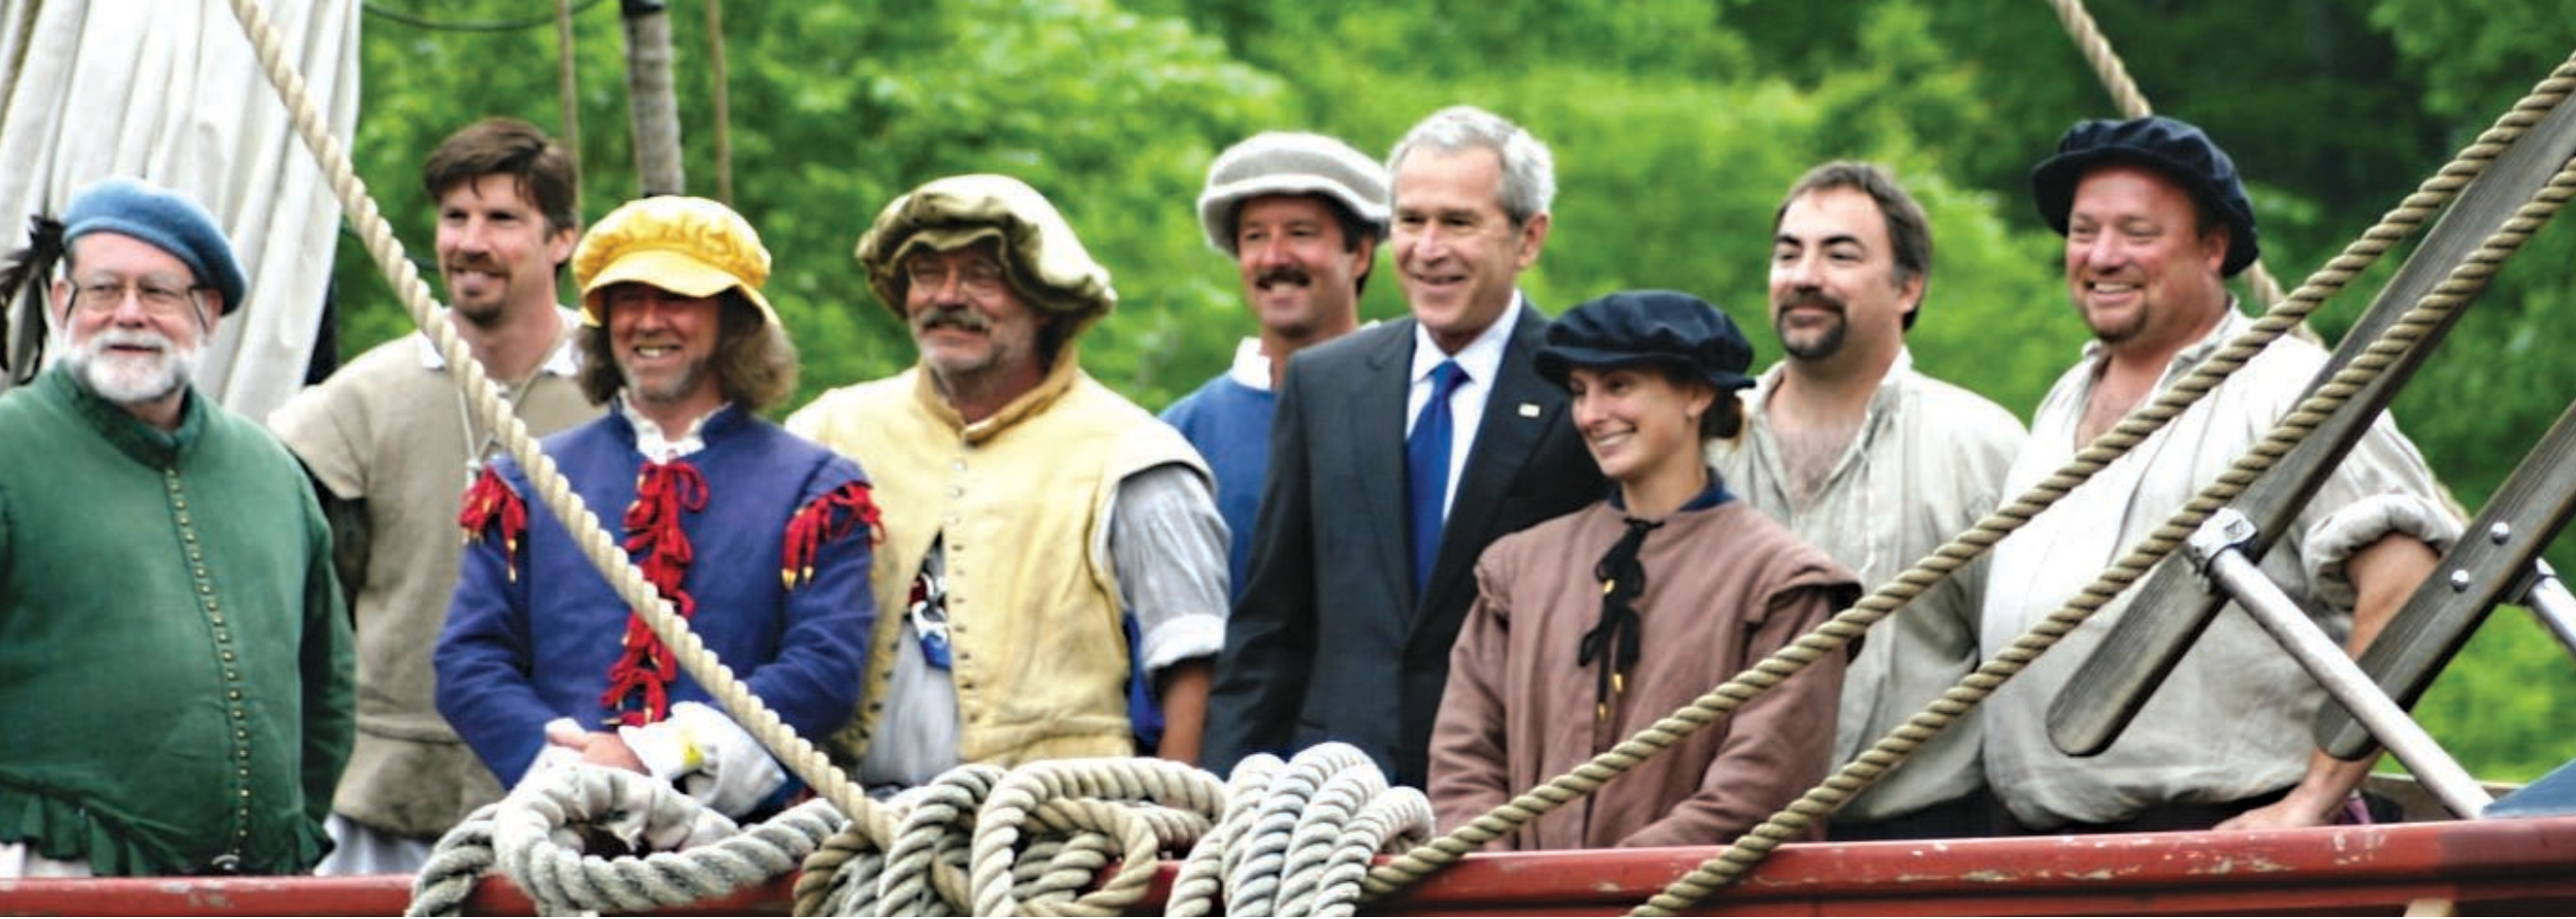 U.S. President George Bush visits the re-created Susan Constant. Photo taken on May 11 2007.